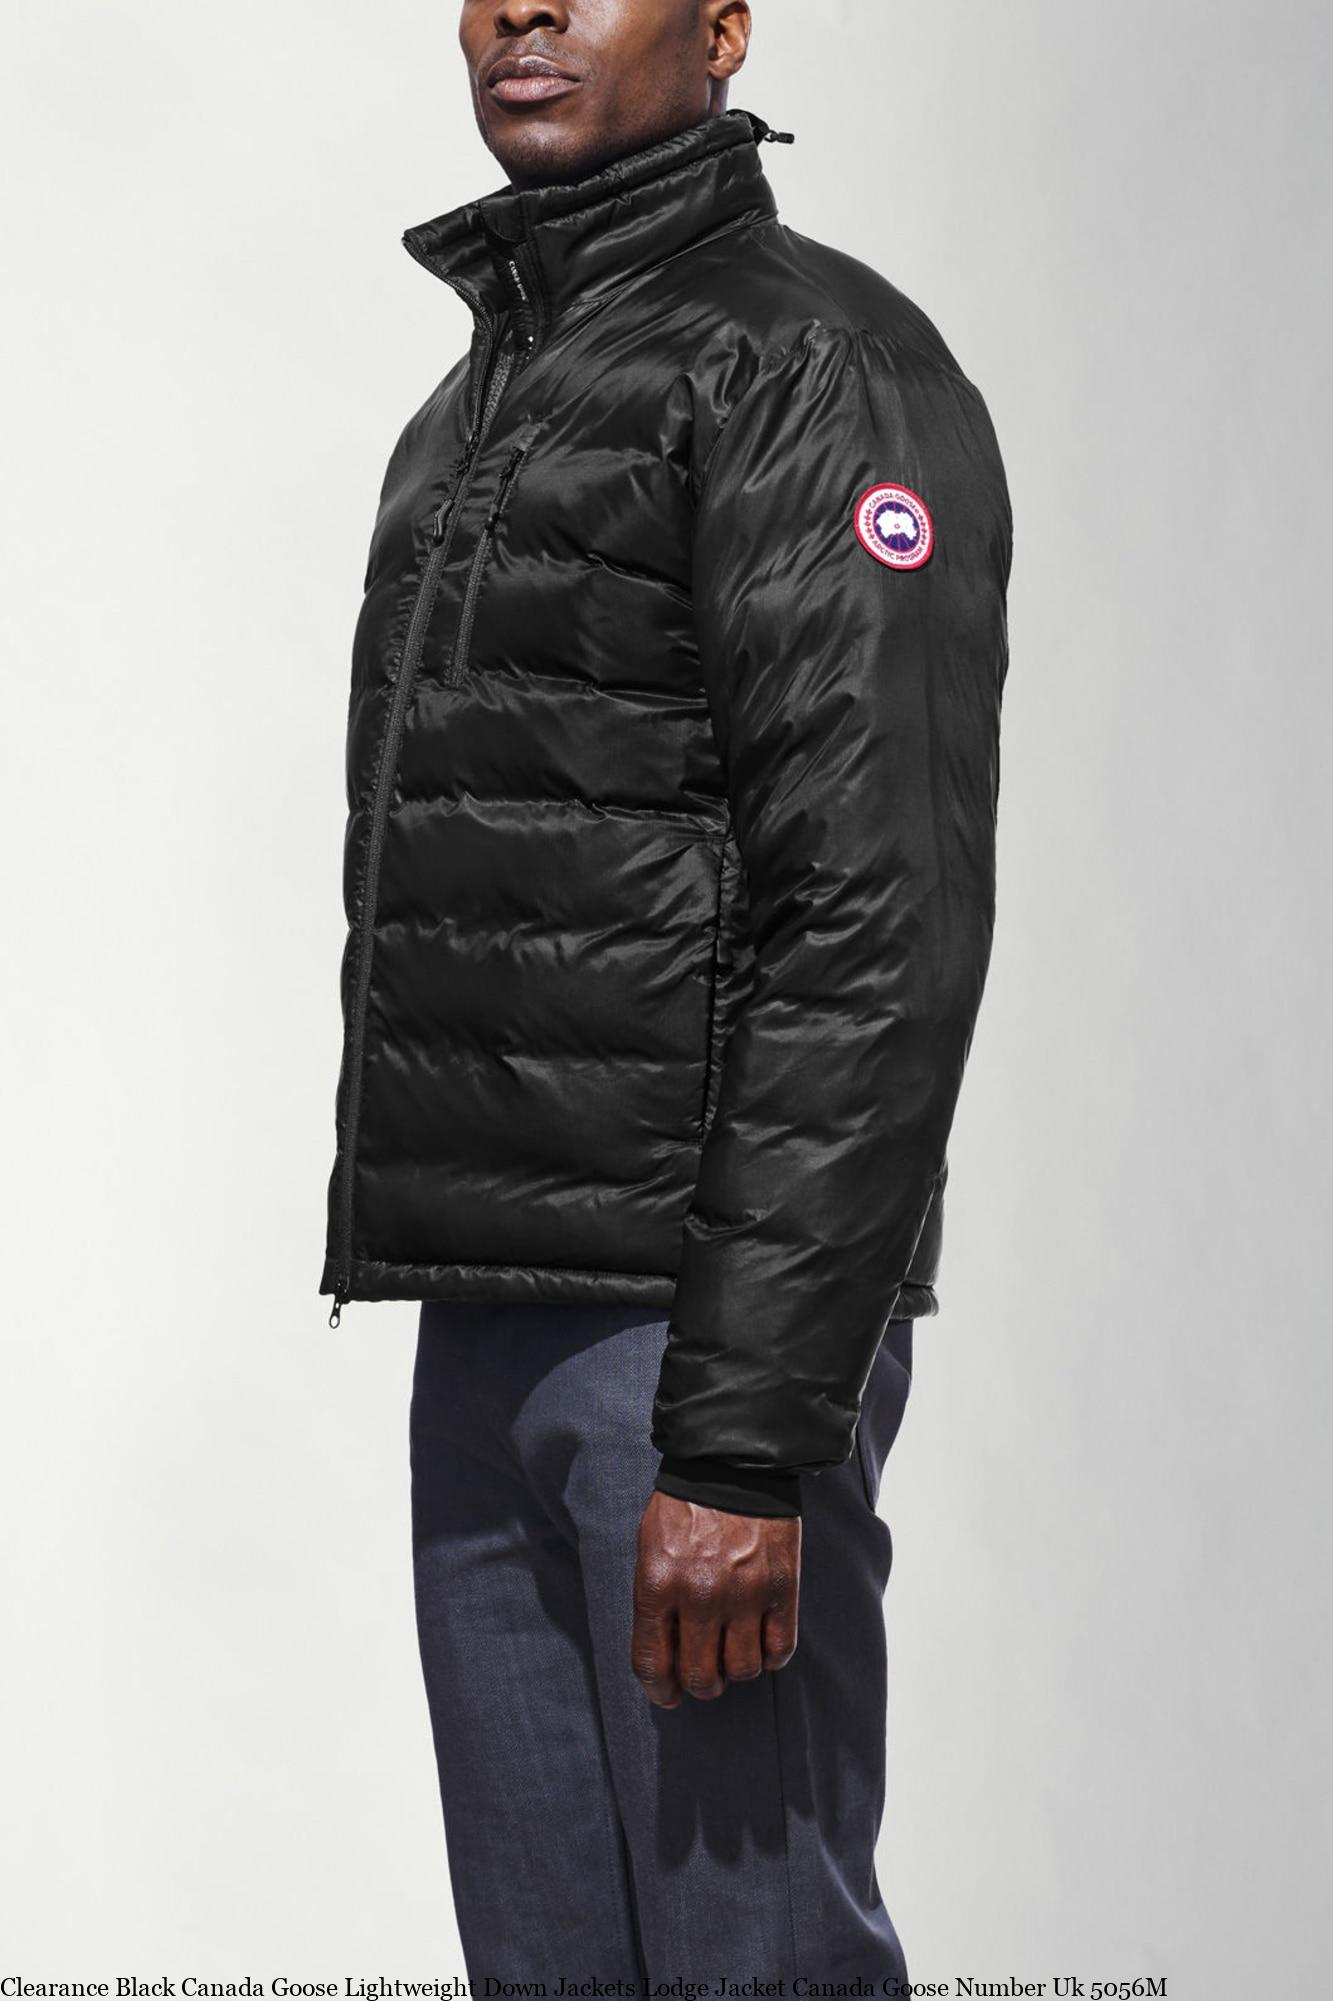 Clearance Black Canada Goose Lightweight Down Jackets Lodge Jacket Canada  Goose Number Uk 5056M – Canada Goose Clearance – Cheap Canada Goose Jackets  Outlet ... dd01c08ab